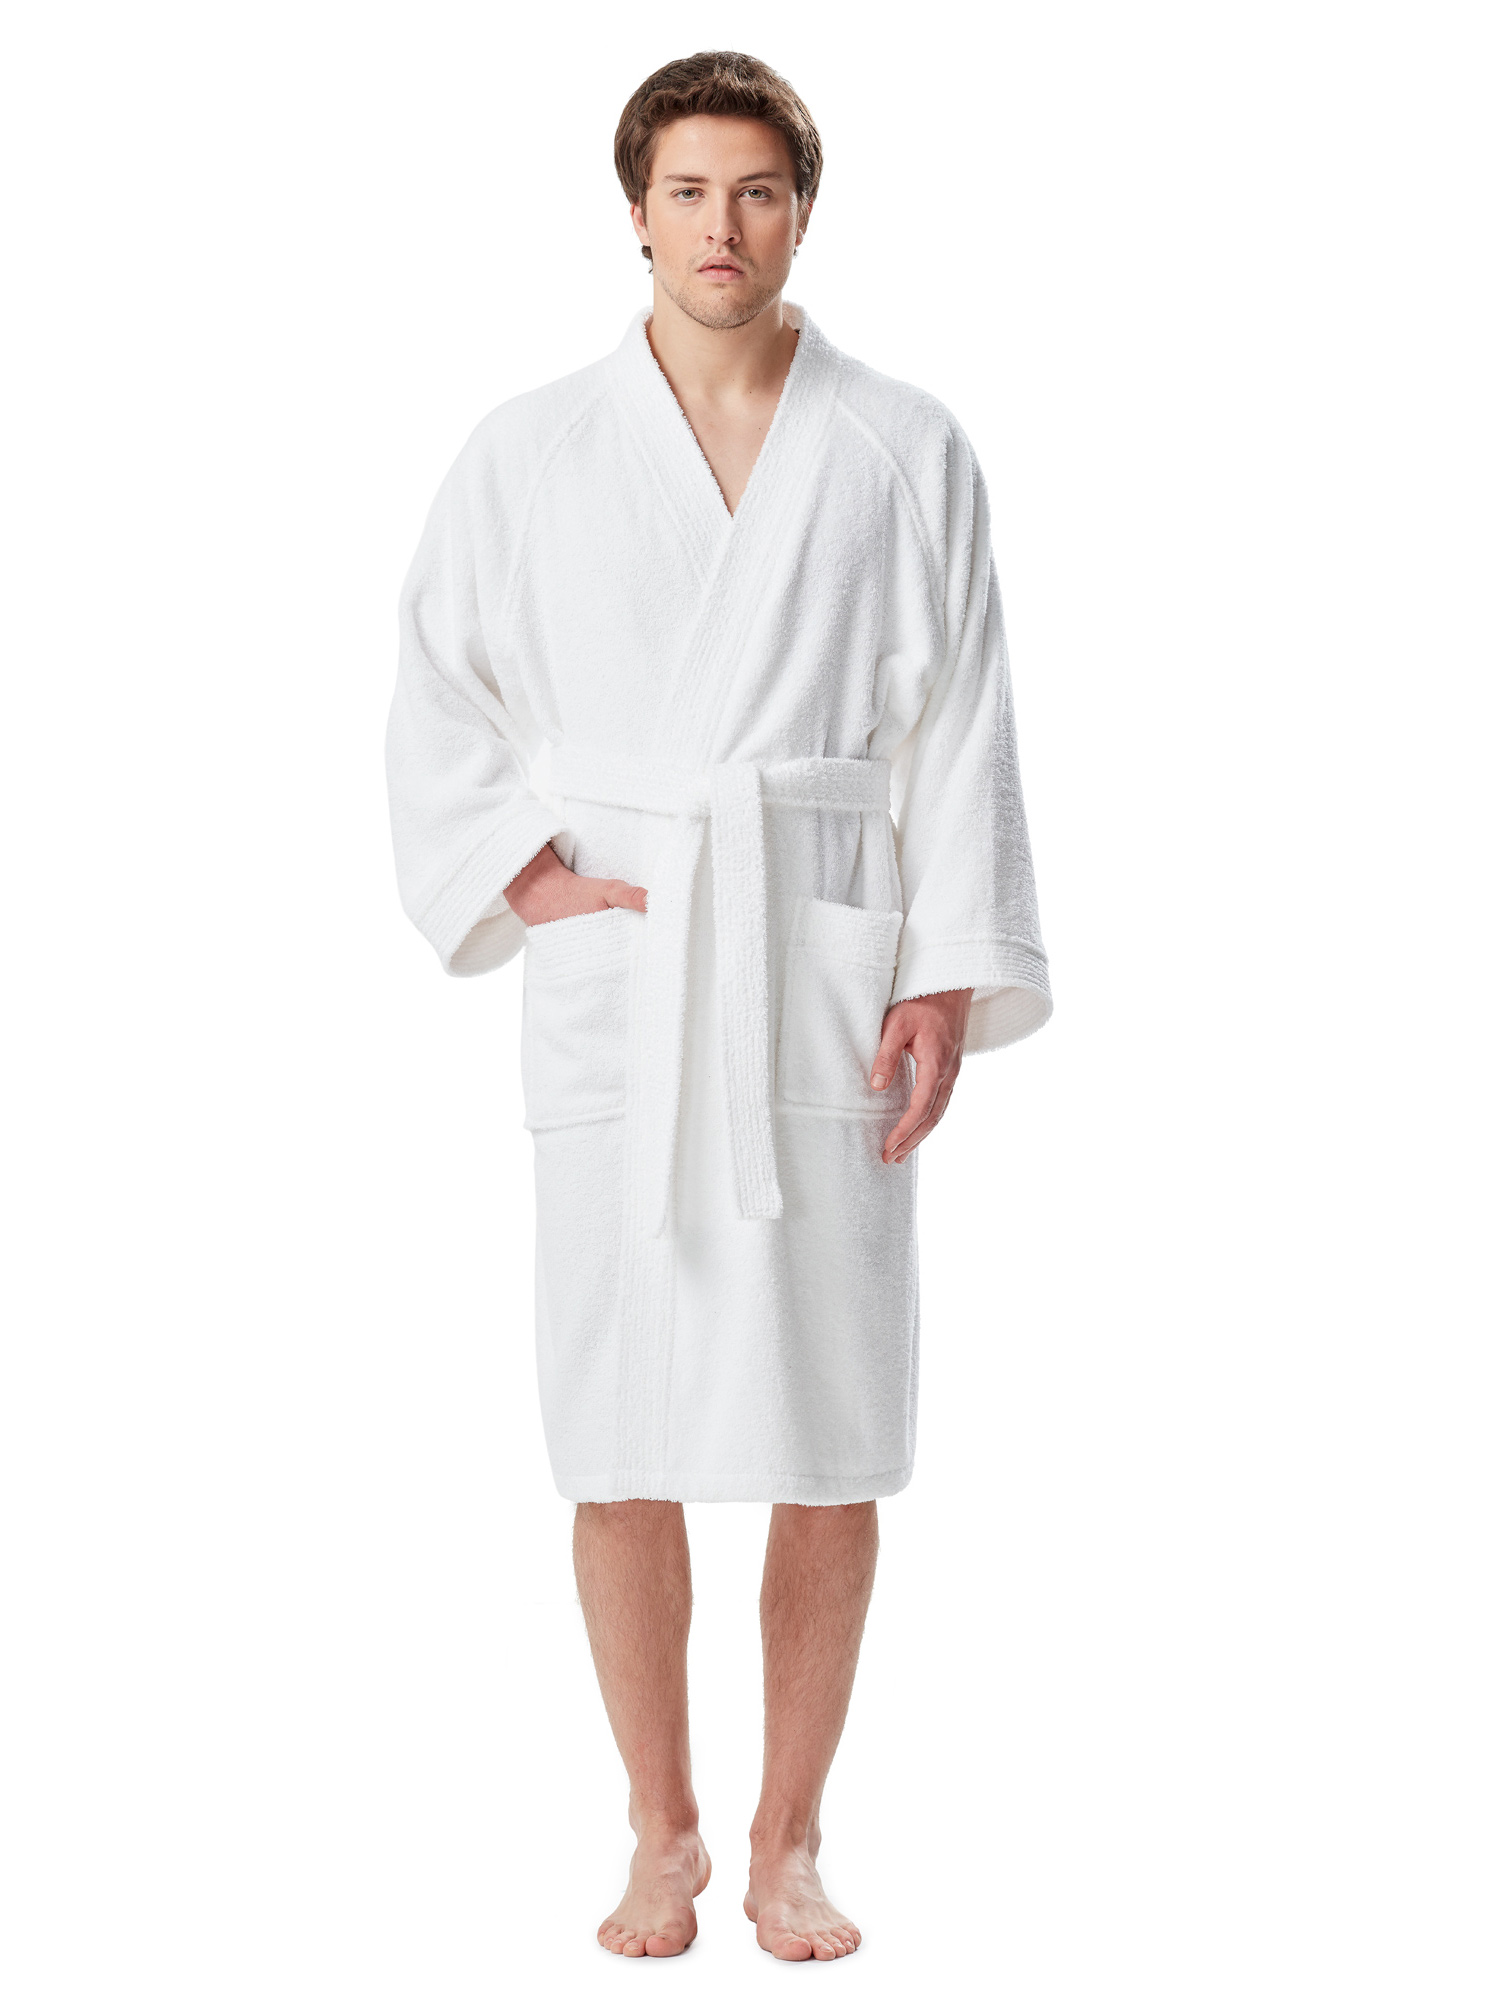 Arus - Men s Thick Full Ankle Length Hooded Turkish Cotton Bathrobe -  Walmart.com c2eb1ca0c